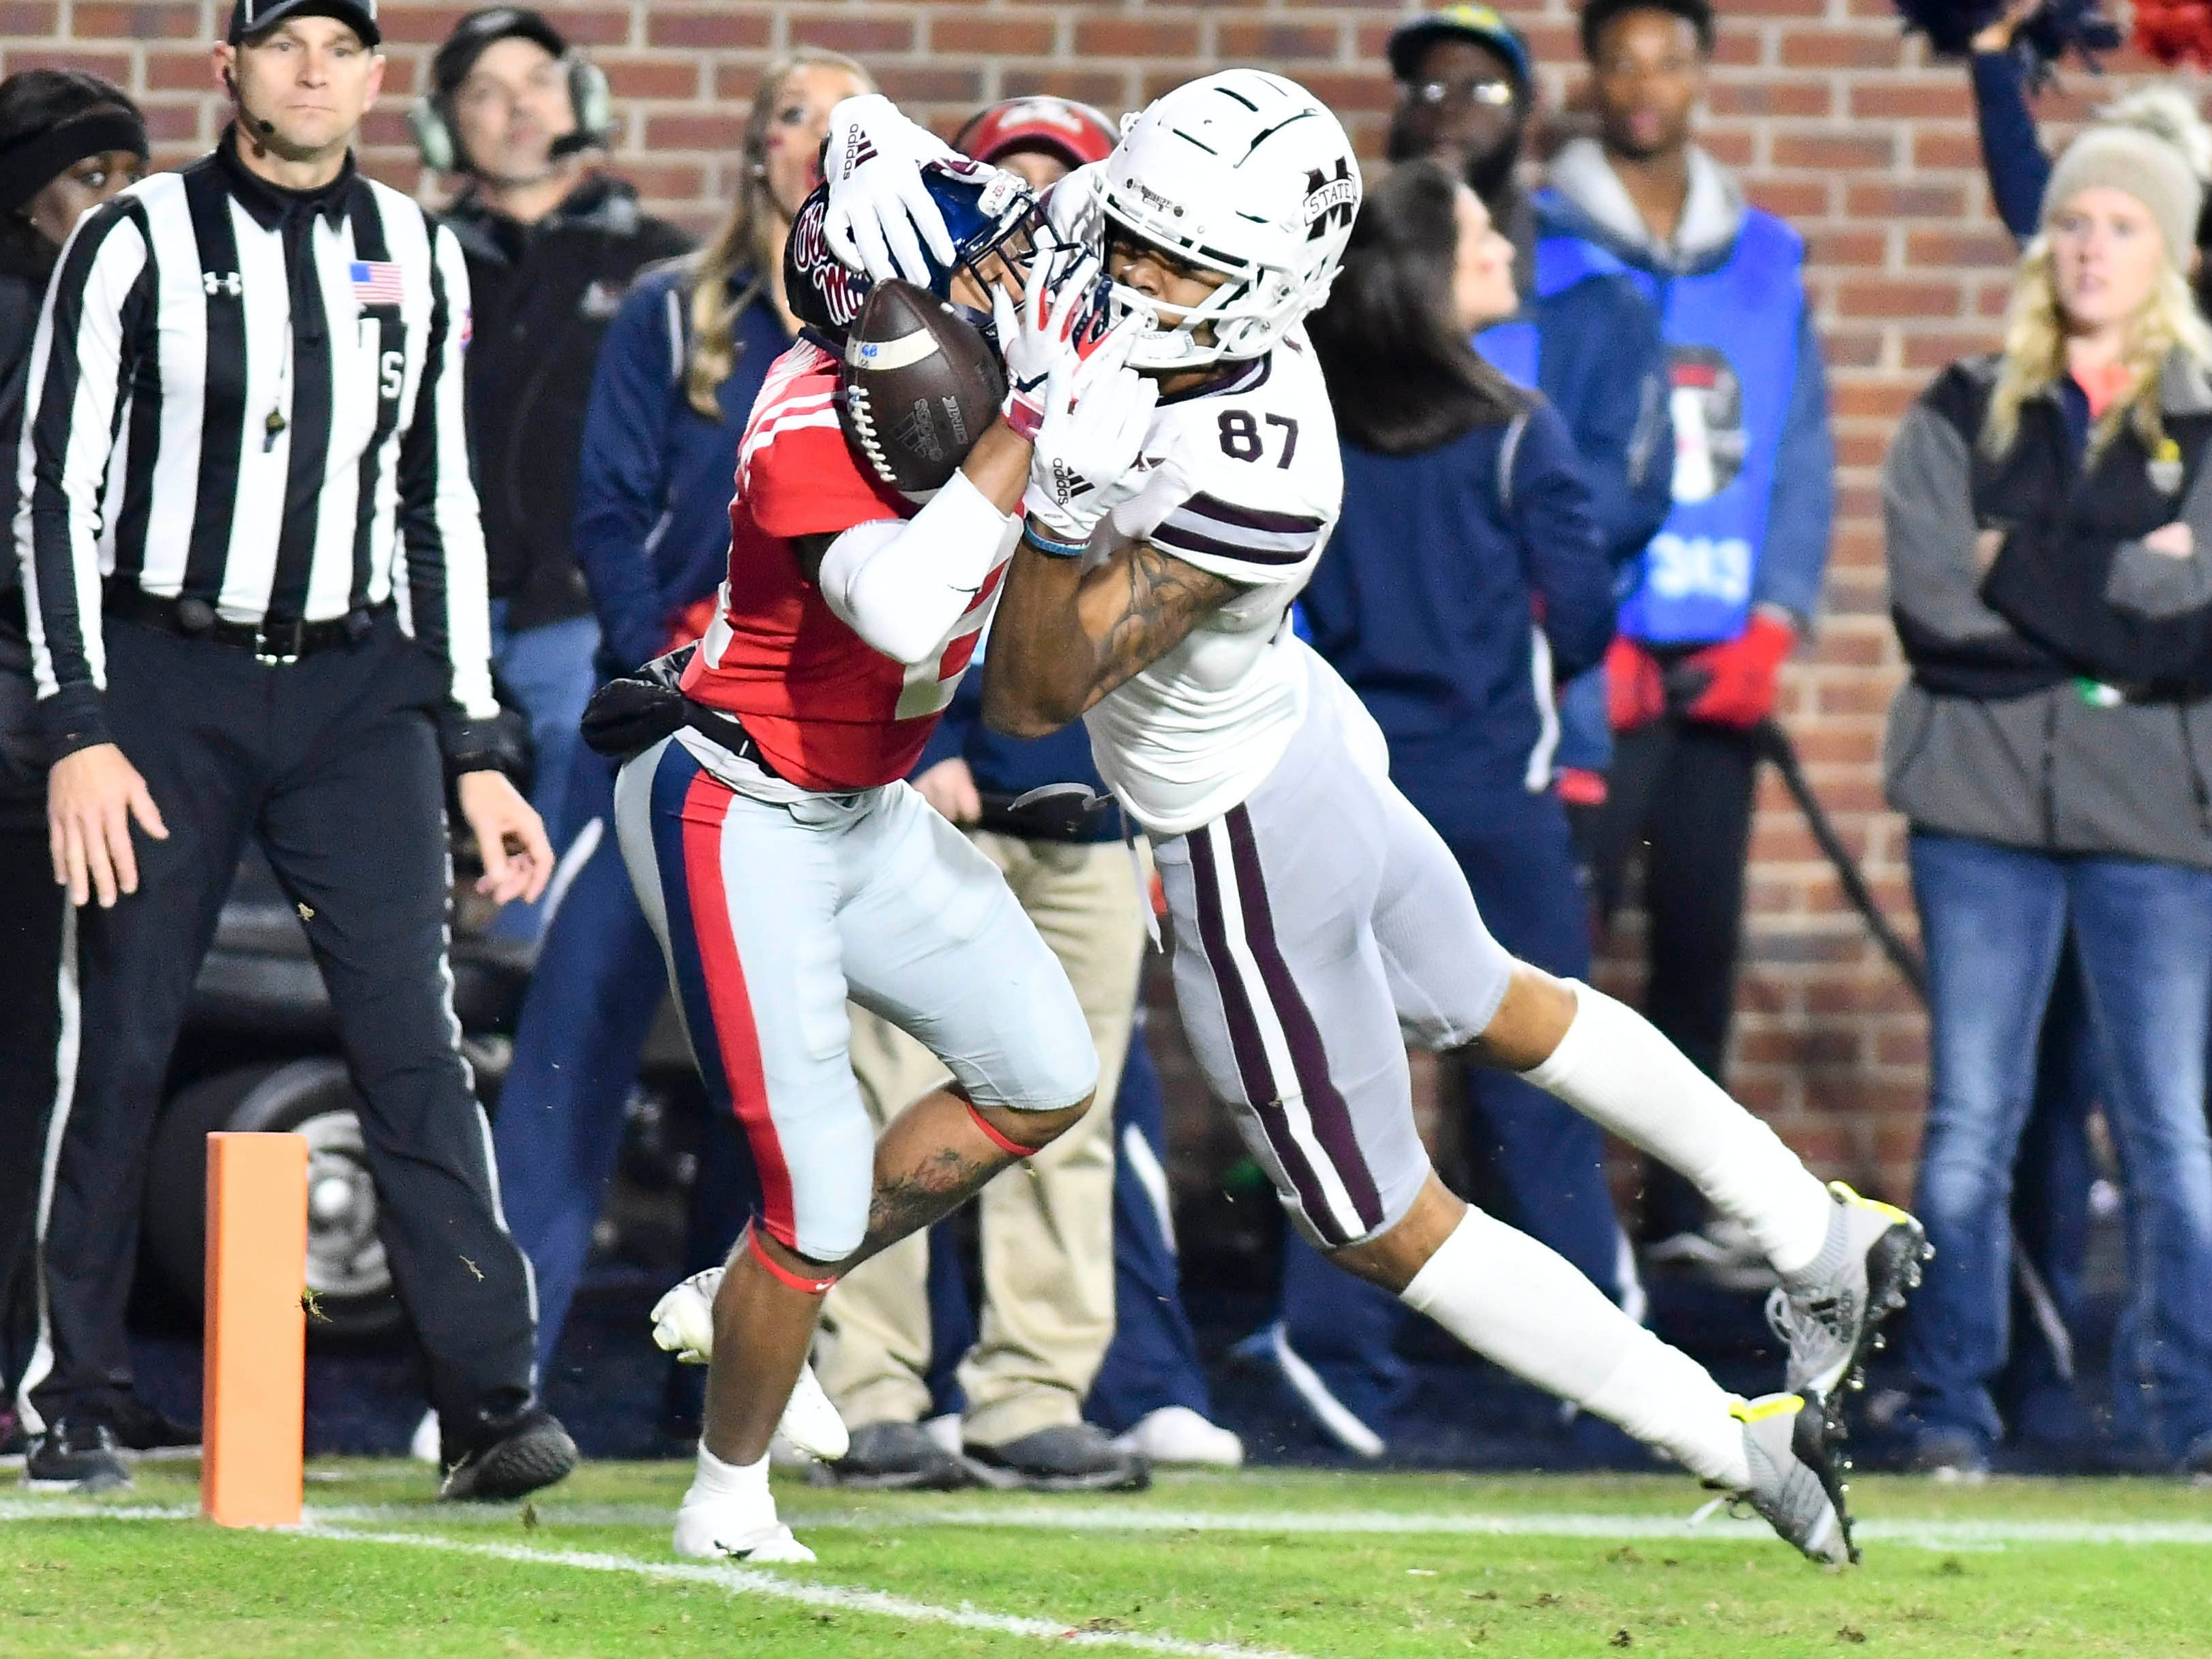 Mississippi State wide receiver Osirus Mitchell (87) fights with Mississippi defensive back Javien Hamilton for a catch during the second quarter at Vaught-Hemingway Stadium.